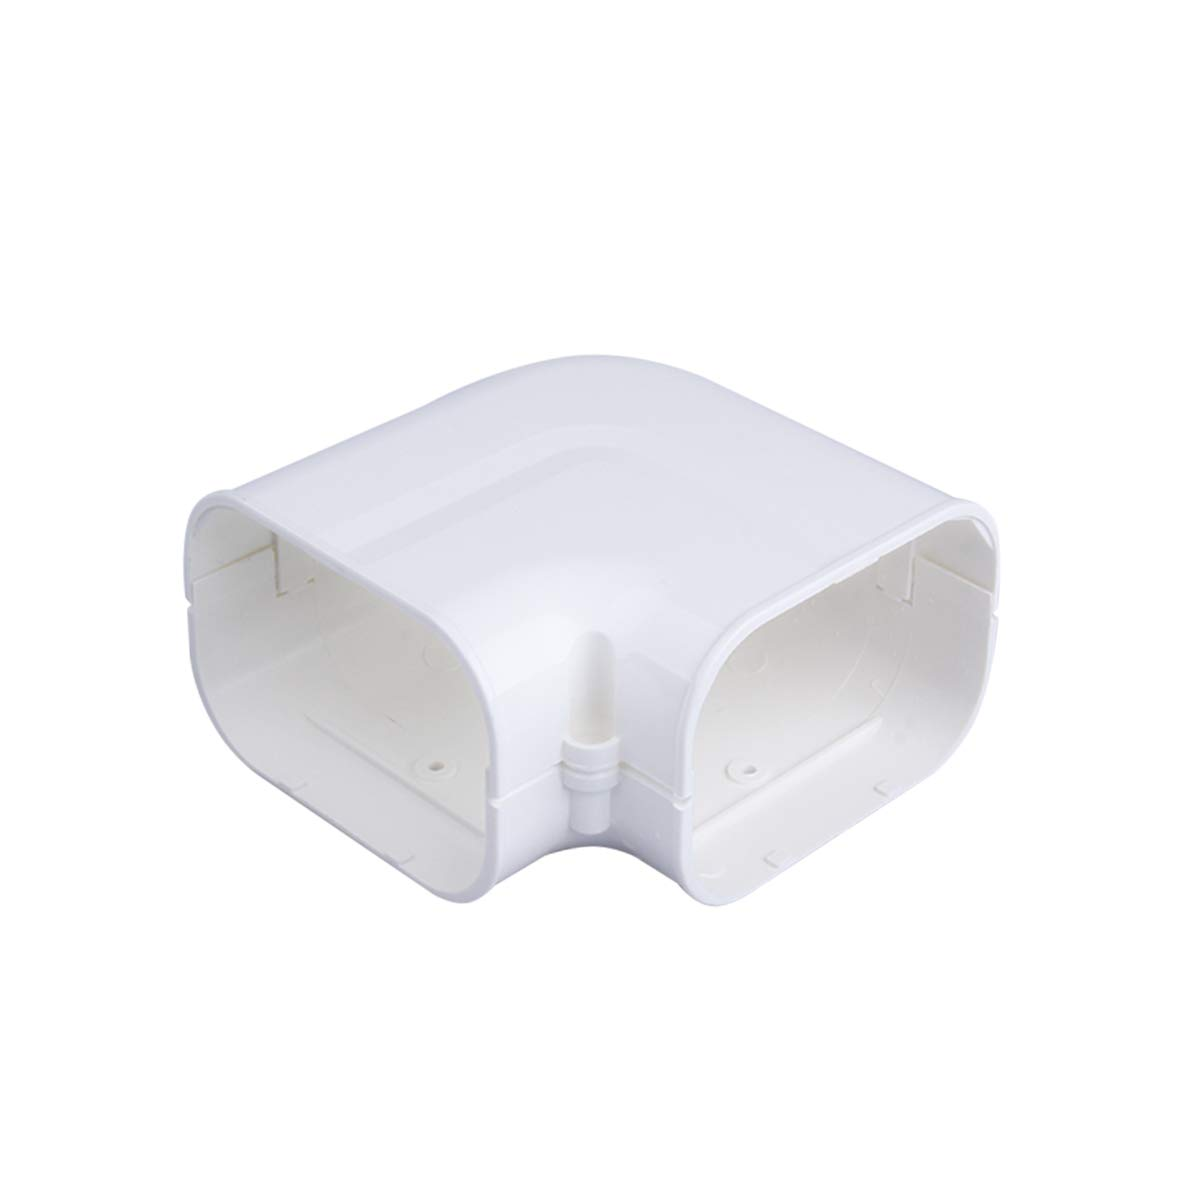 AC Parts 4 W 90 Degree Elbow Bend Fitting for PVC Line Set Cover Kit . Beige